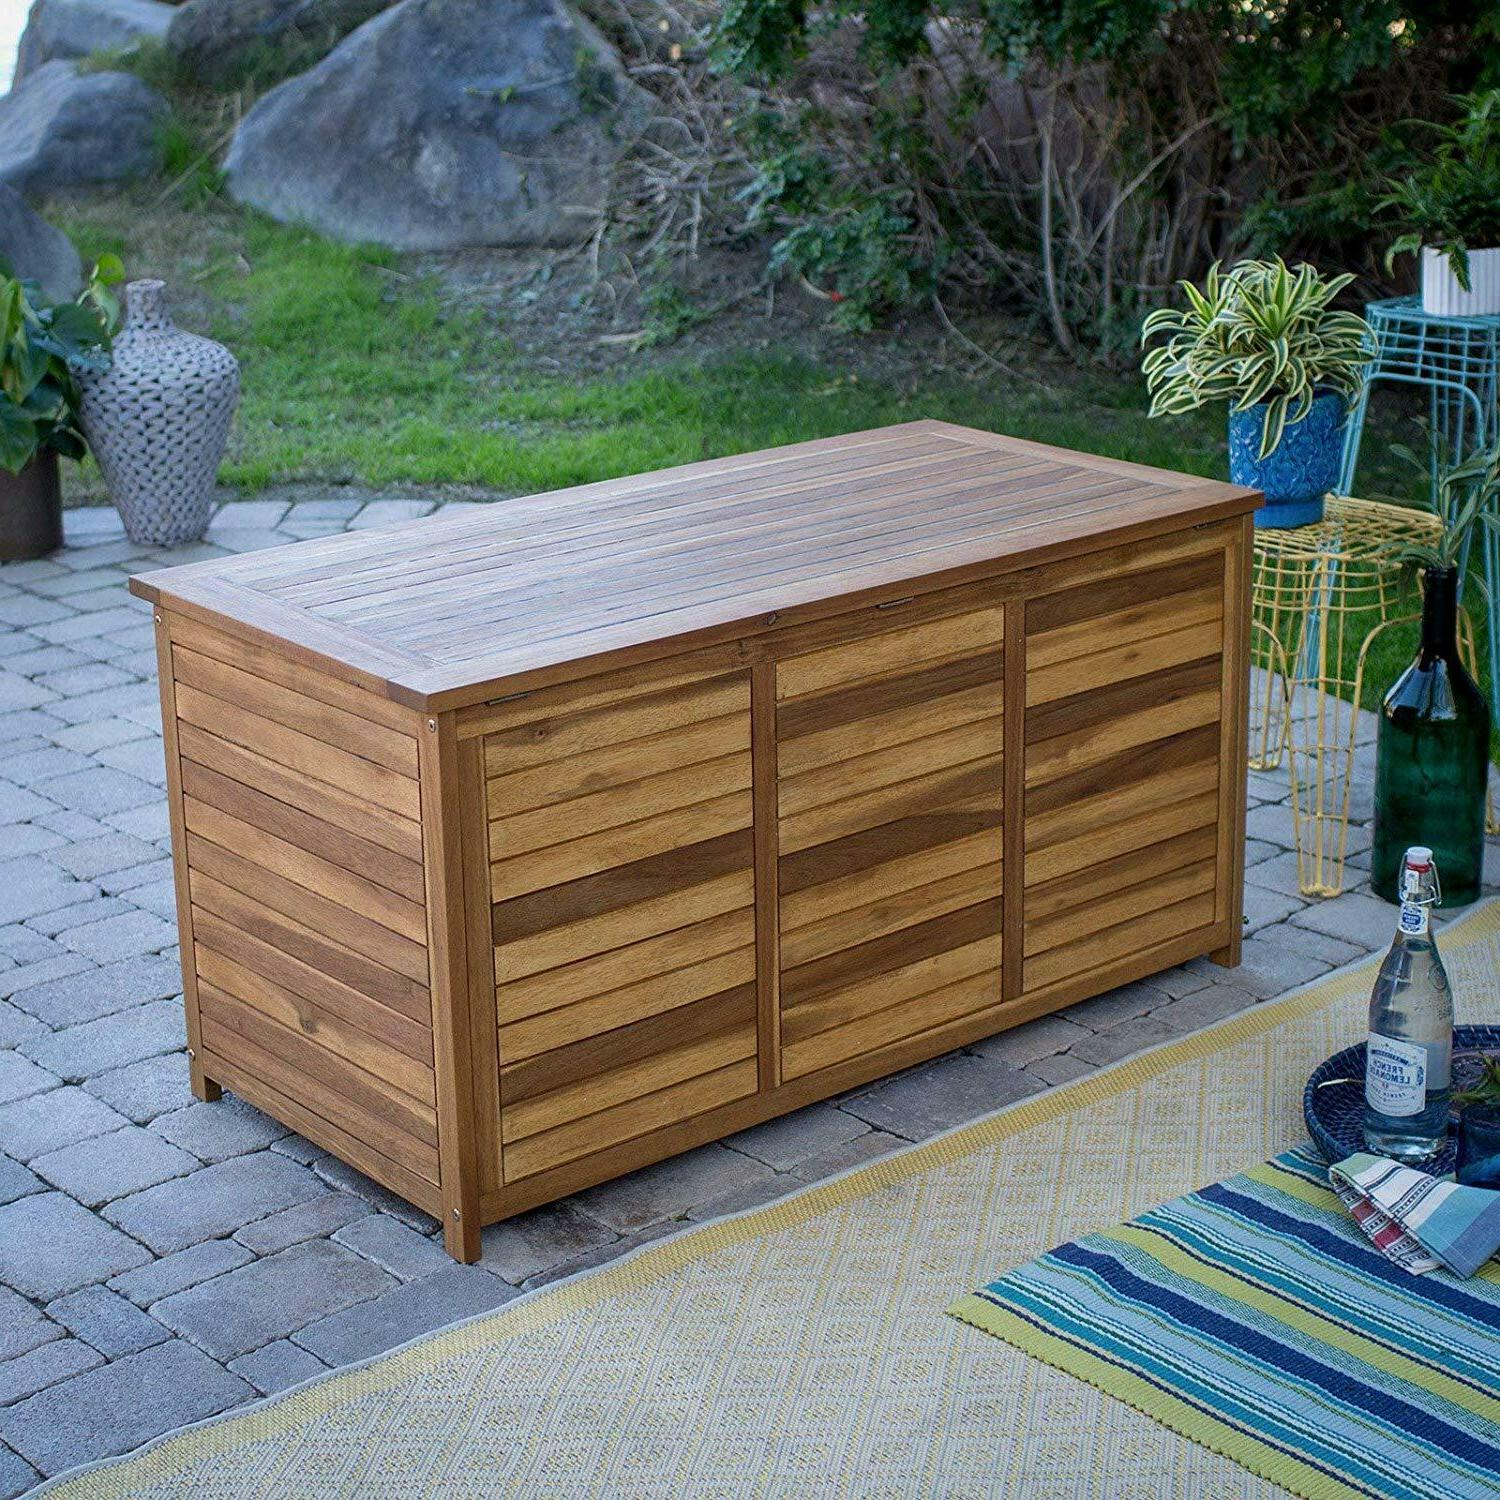 Natural Wood Patio Deck w/ Gray Fabric Storage